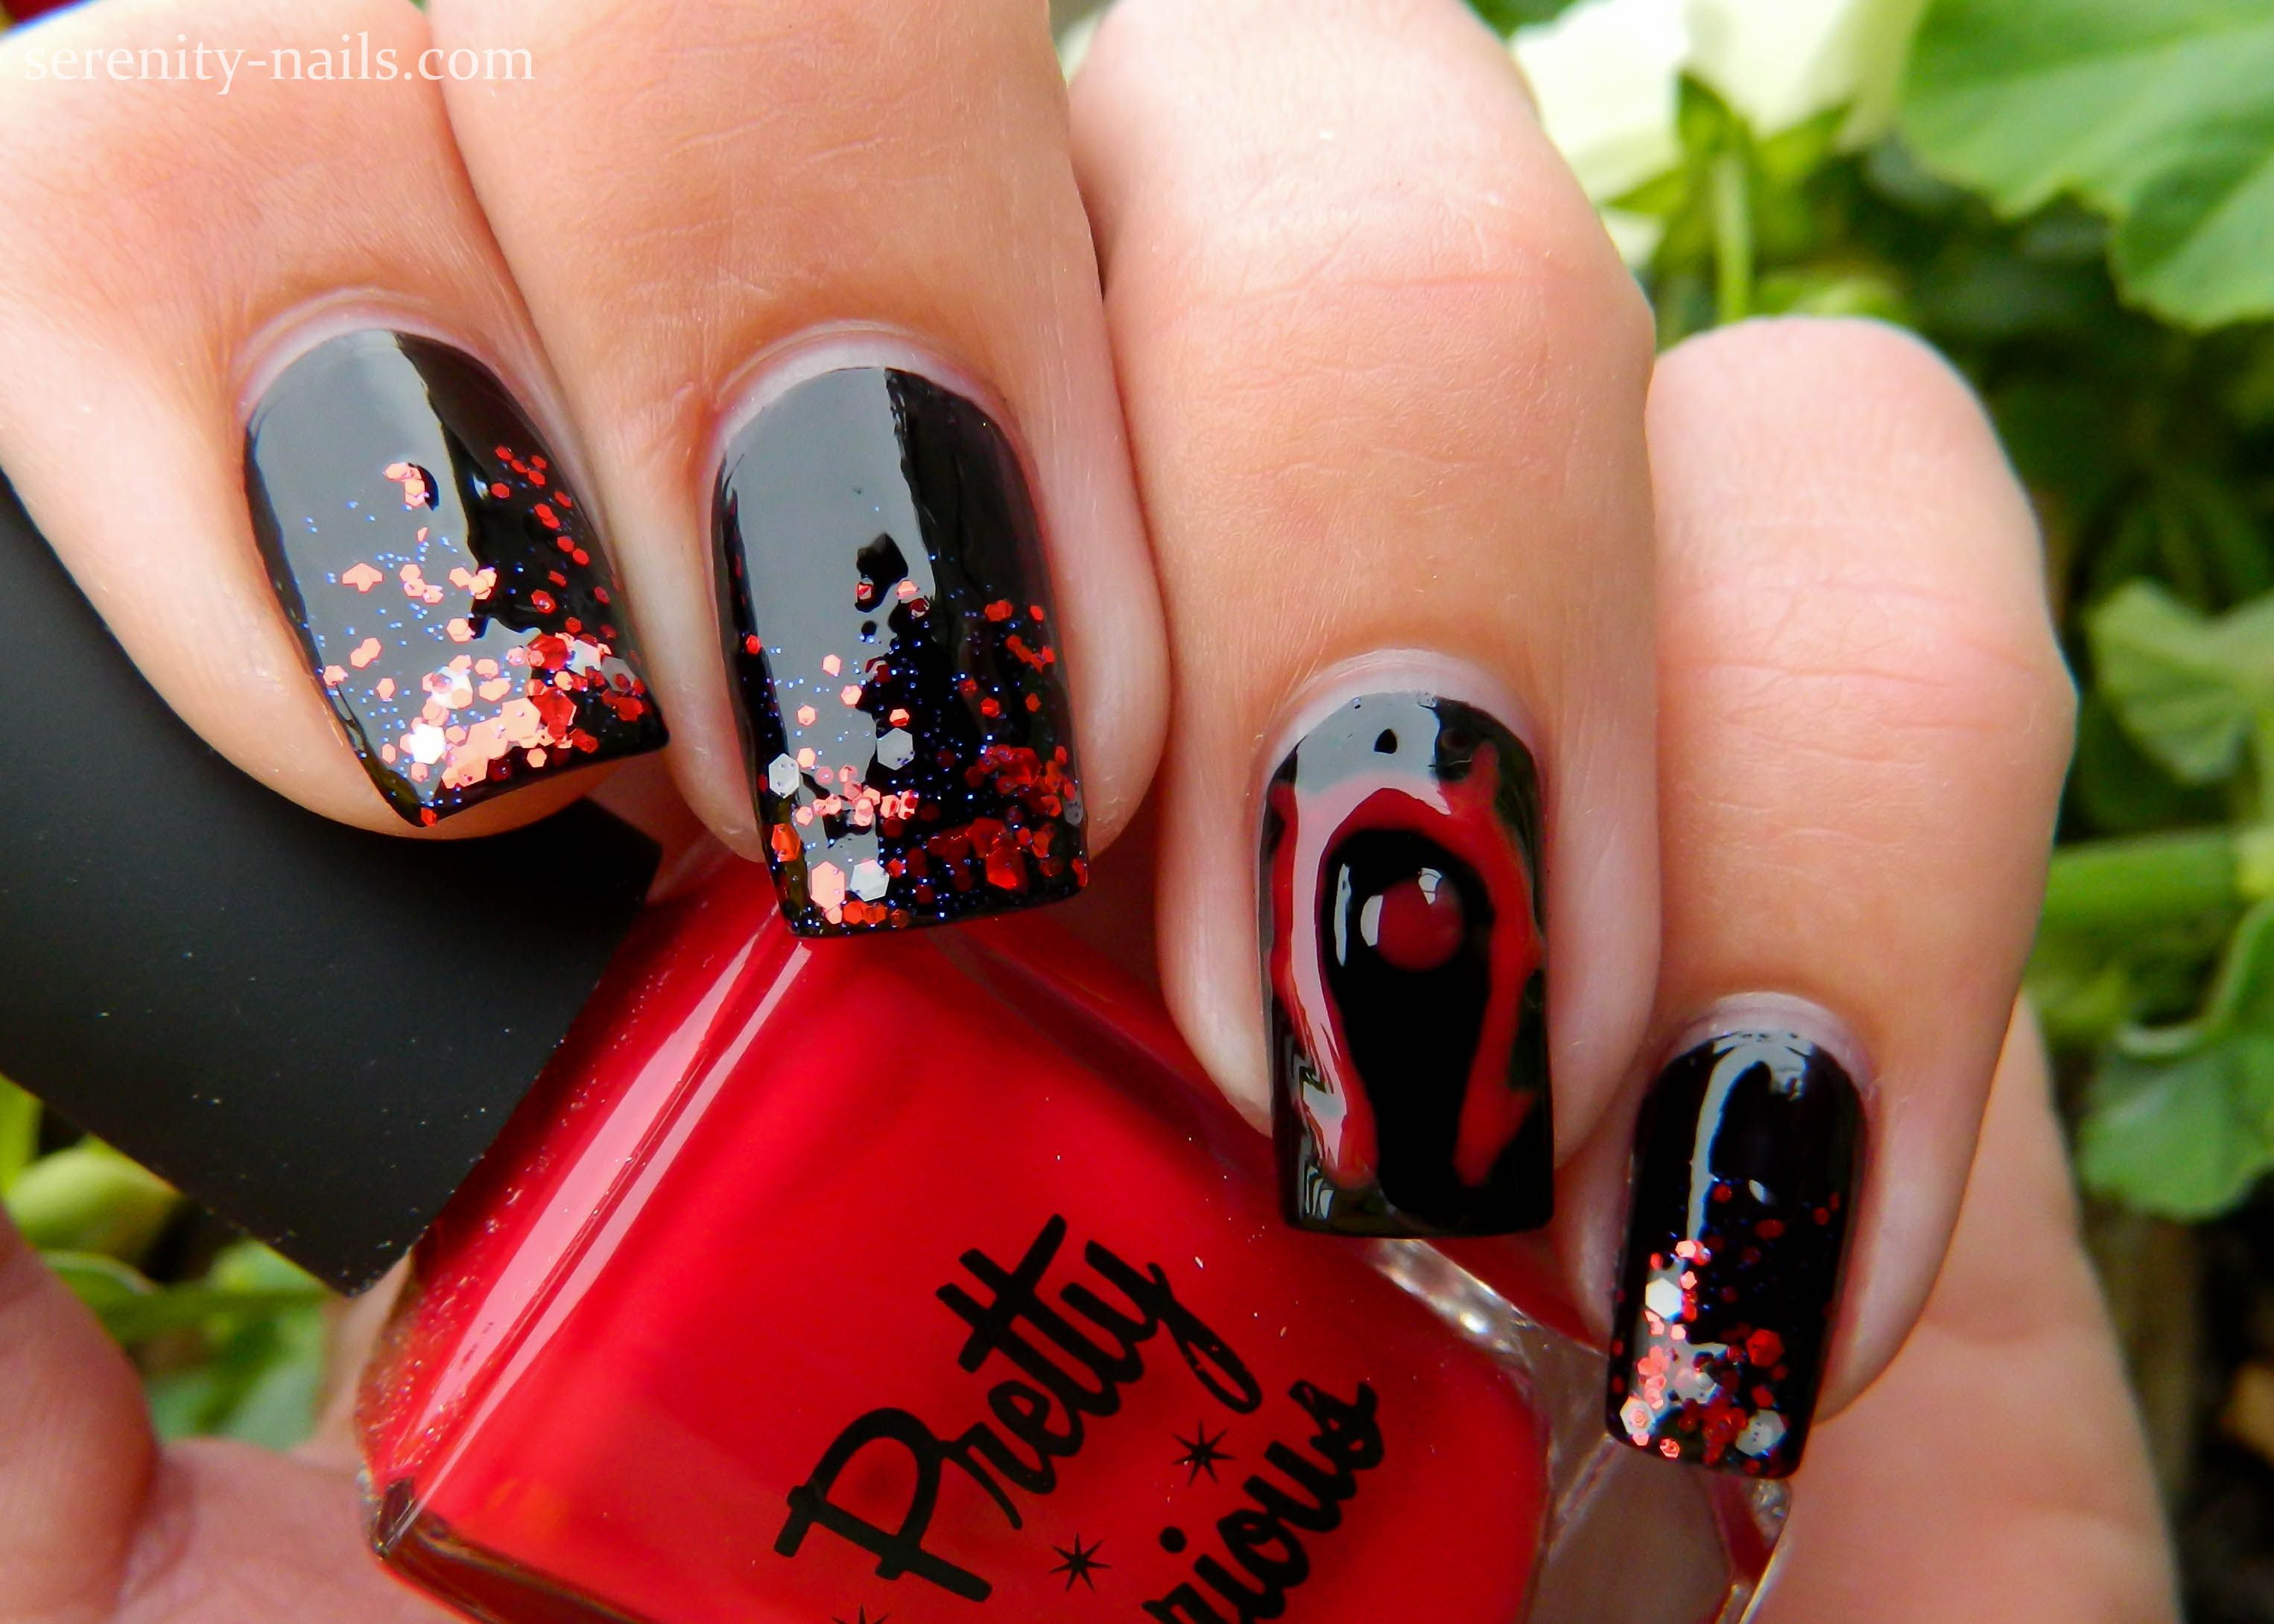 Horde Nails Celestial Cosmetics Armageddon Pretty Serious Something Strange Hell On